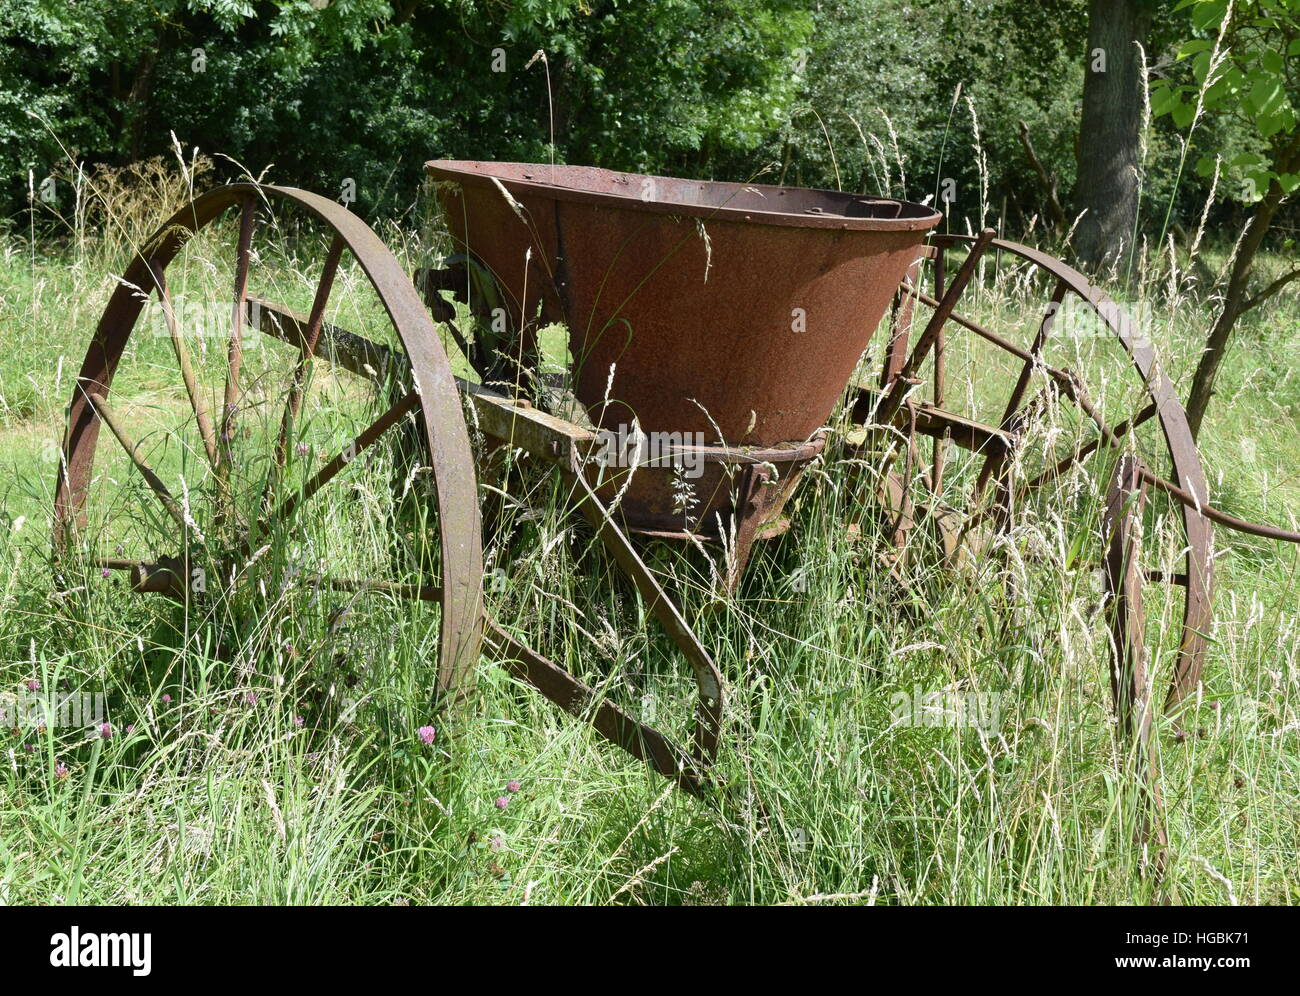 Vintage rusty farm equipment in long grass, trees in background - Stock Image